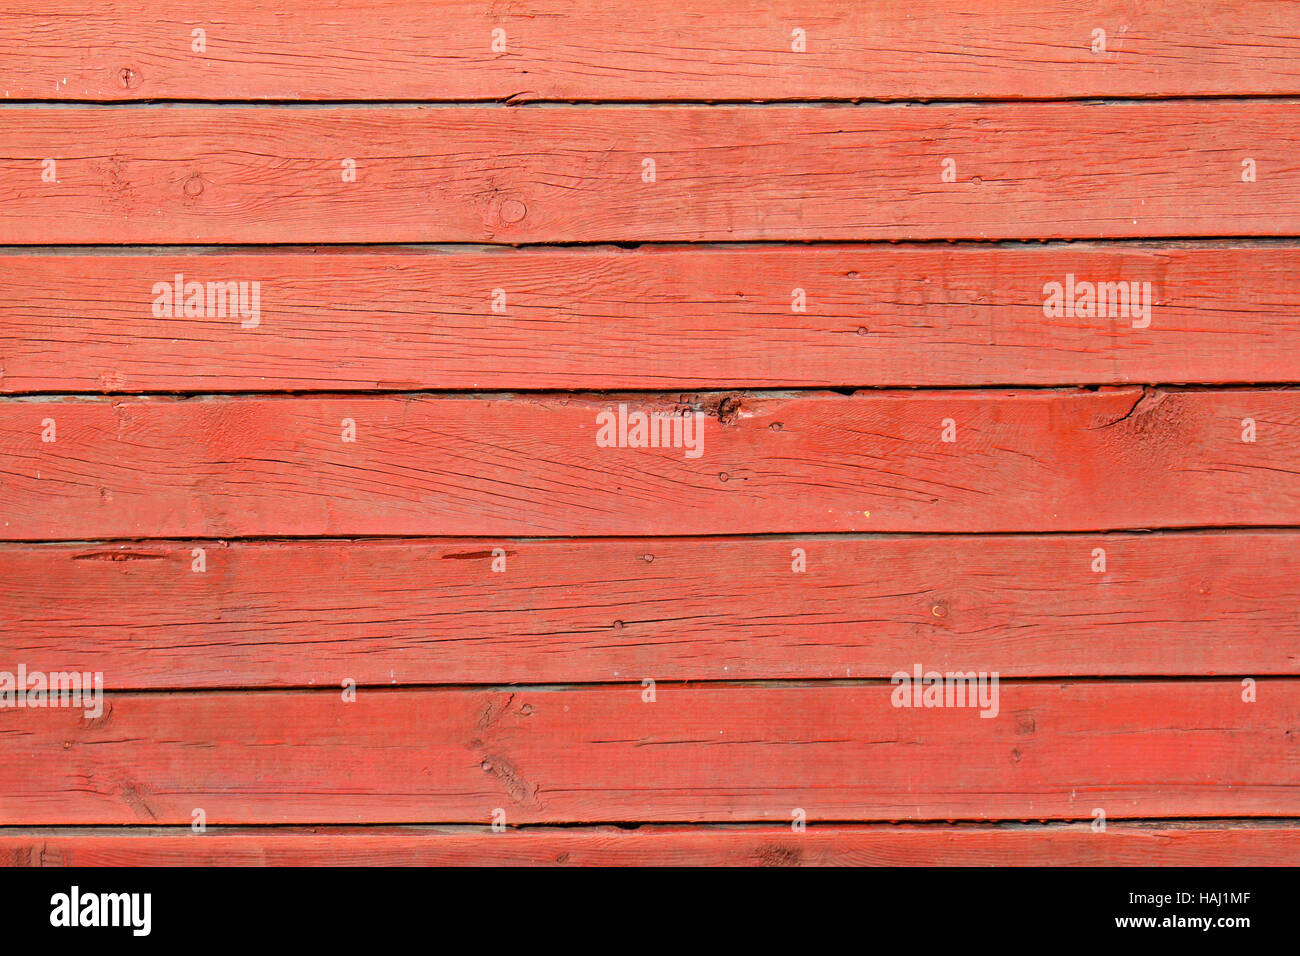 texture of red wood planks - Stock Image